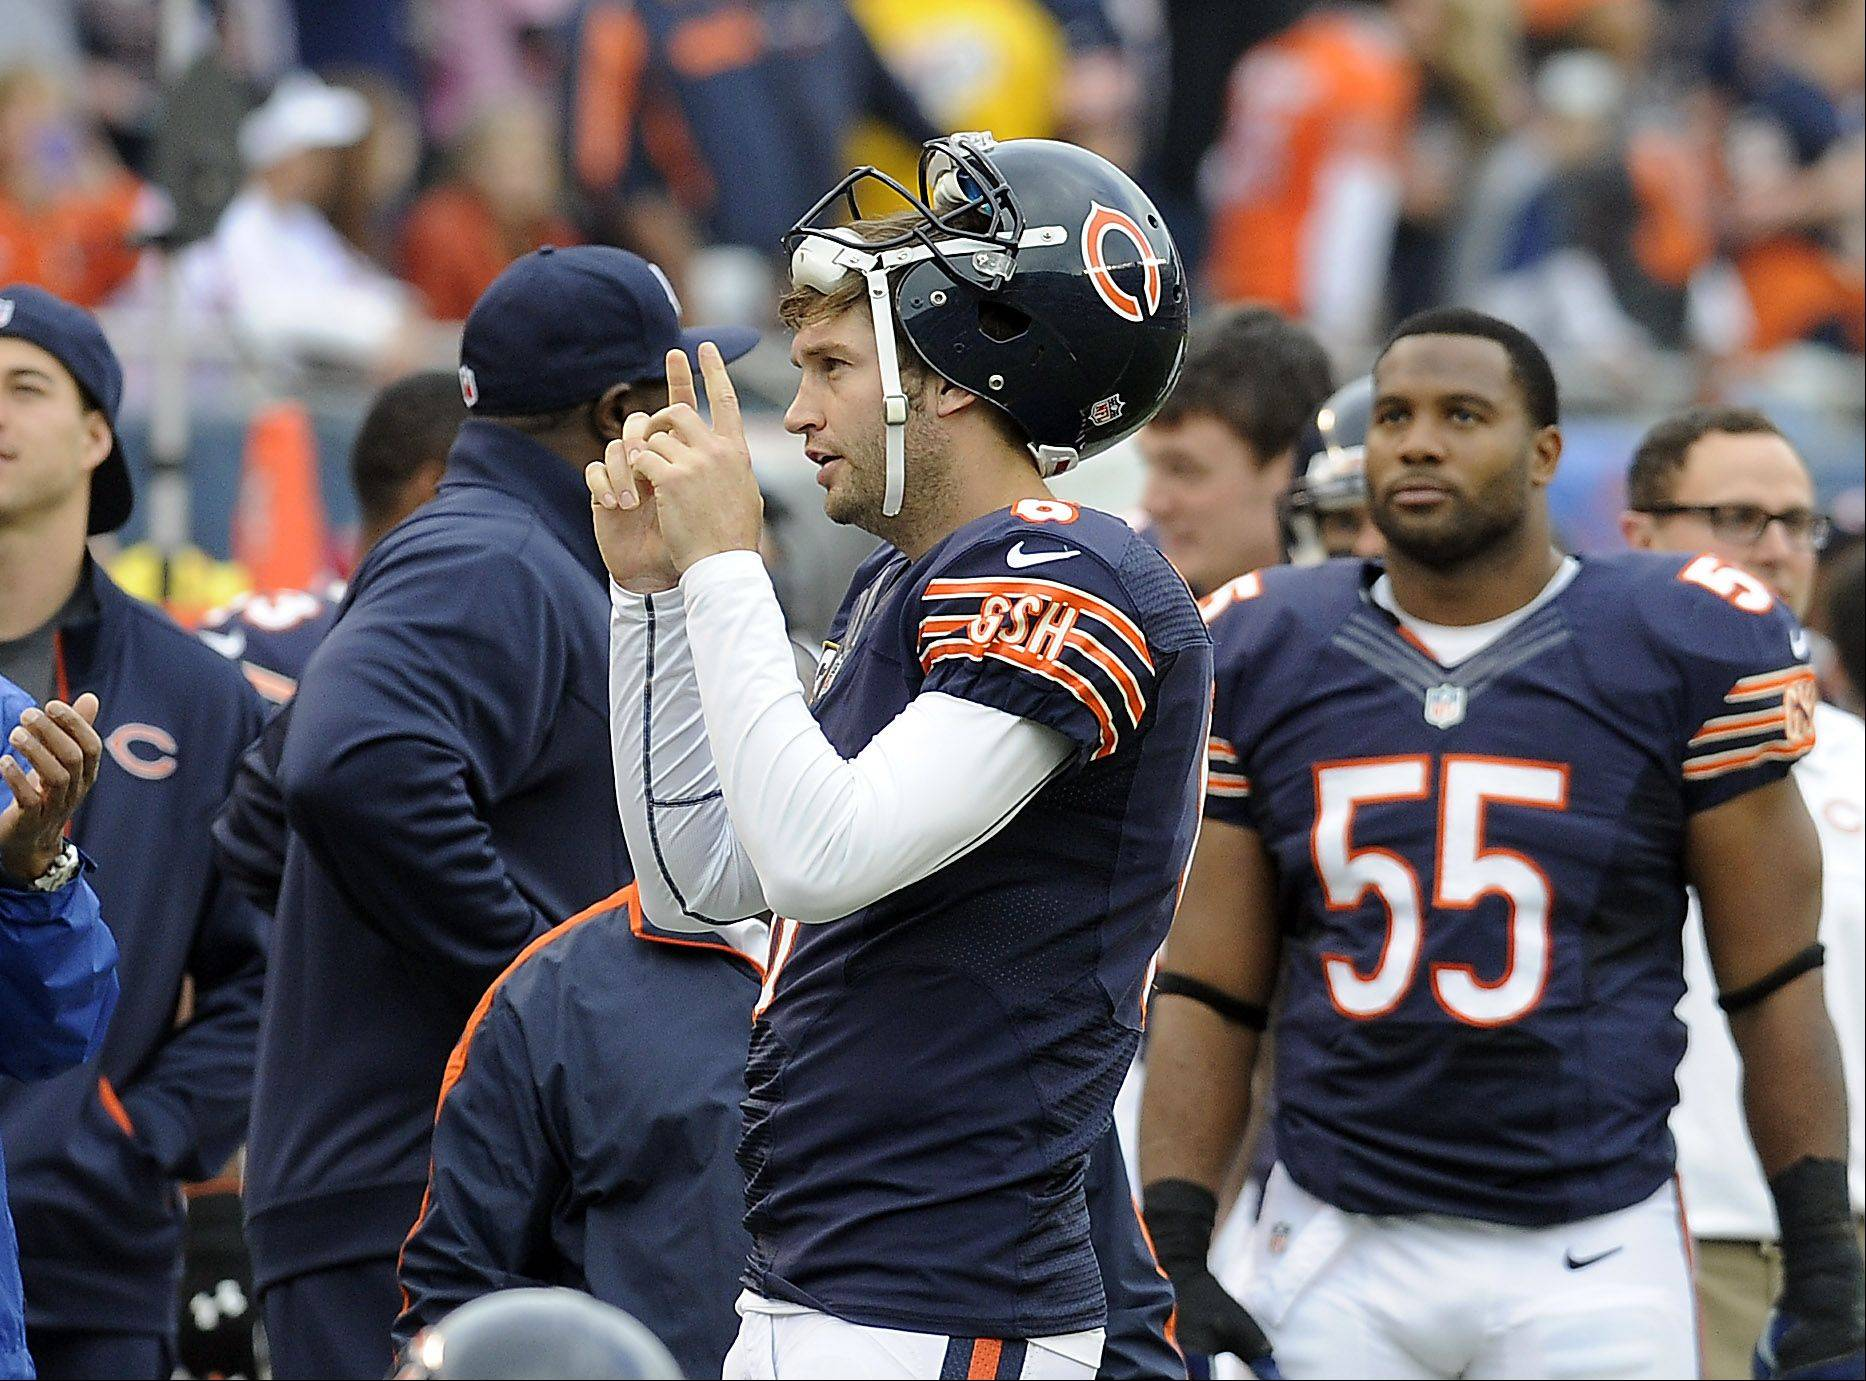 Bears quarterback Jay Cutler signals touchdown after he watched the replay of the touchdown of Earl Bennett in the first quarter at Soldier Field in Chicago.